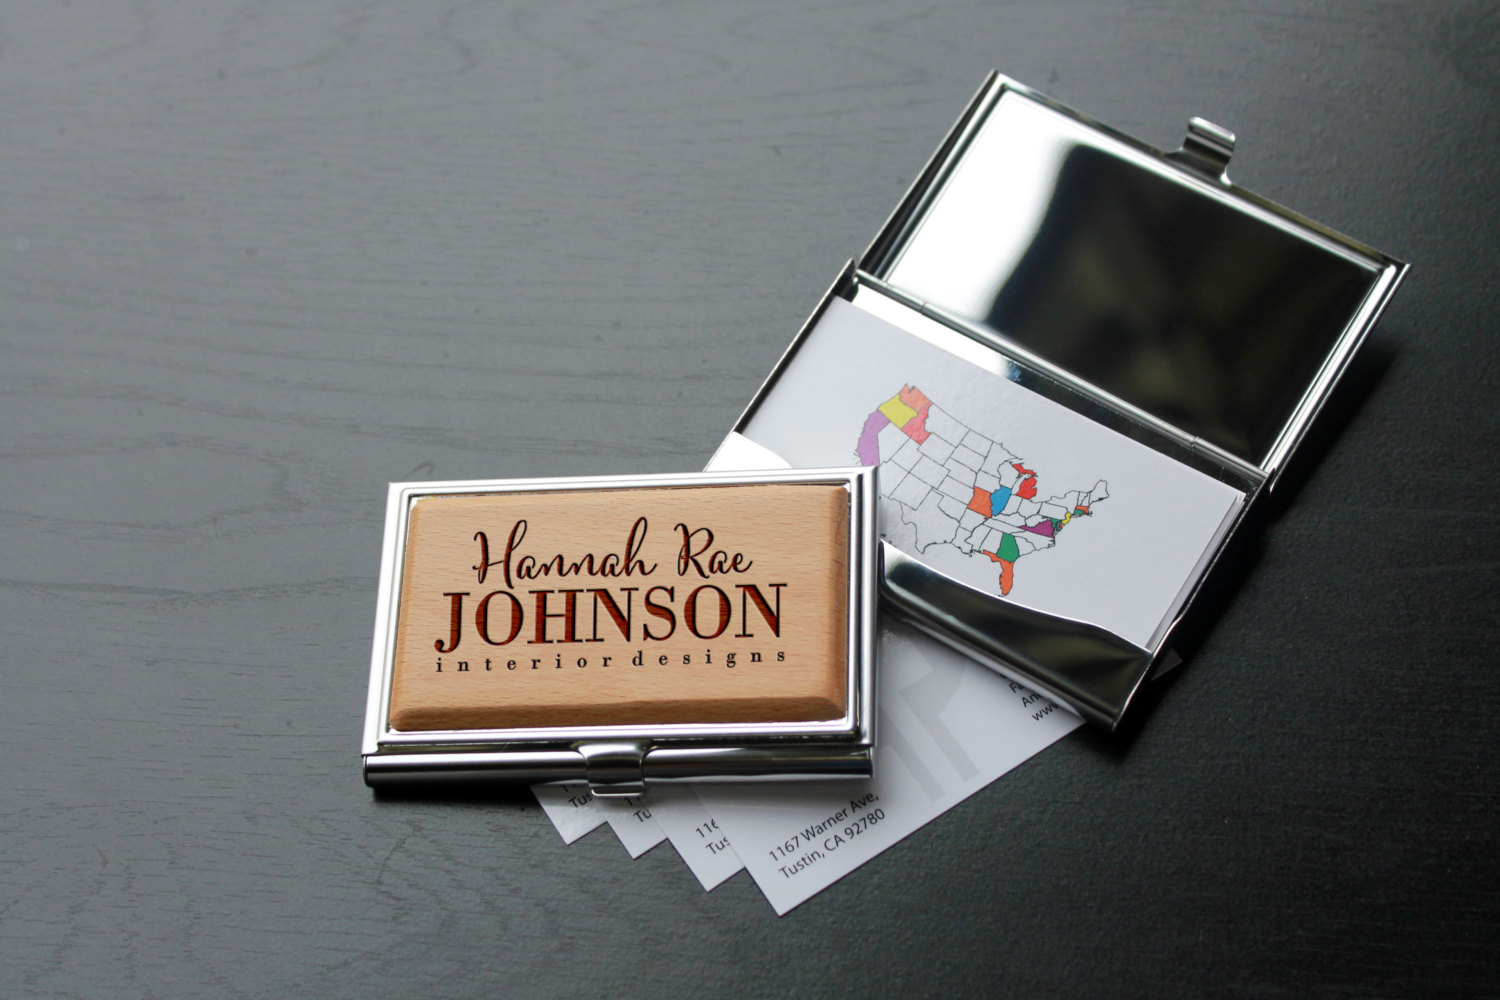 Engraved business cards business card tips engraved business cards colourmoves